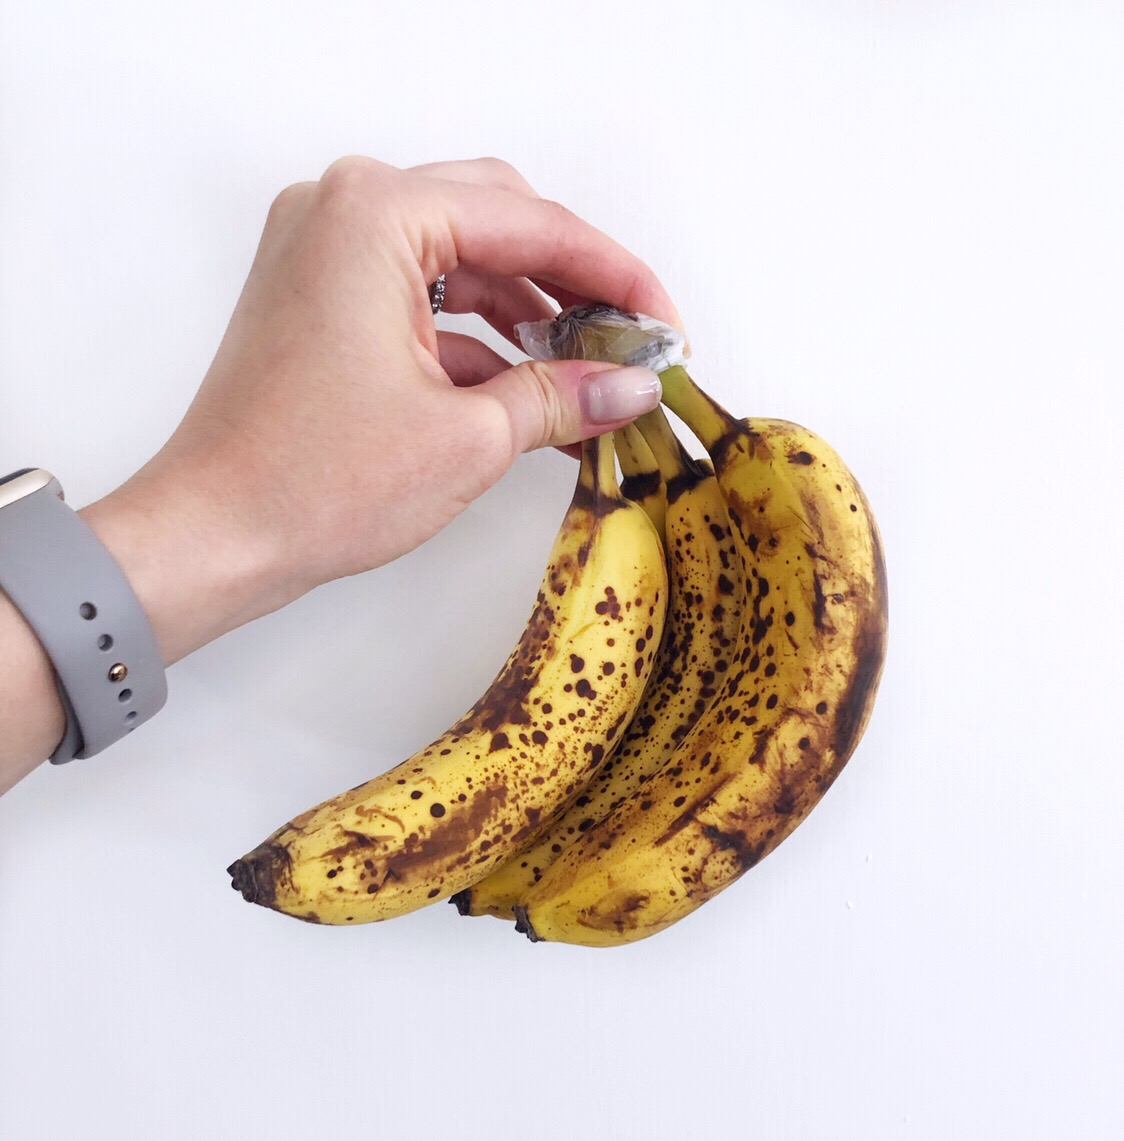 Spotty, browned bananas are a great alkalizing food that encourages good digestion!